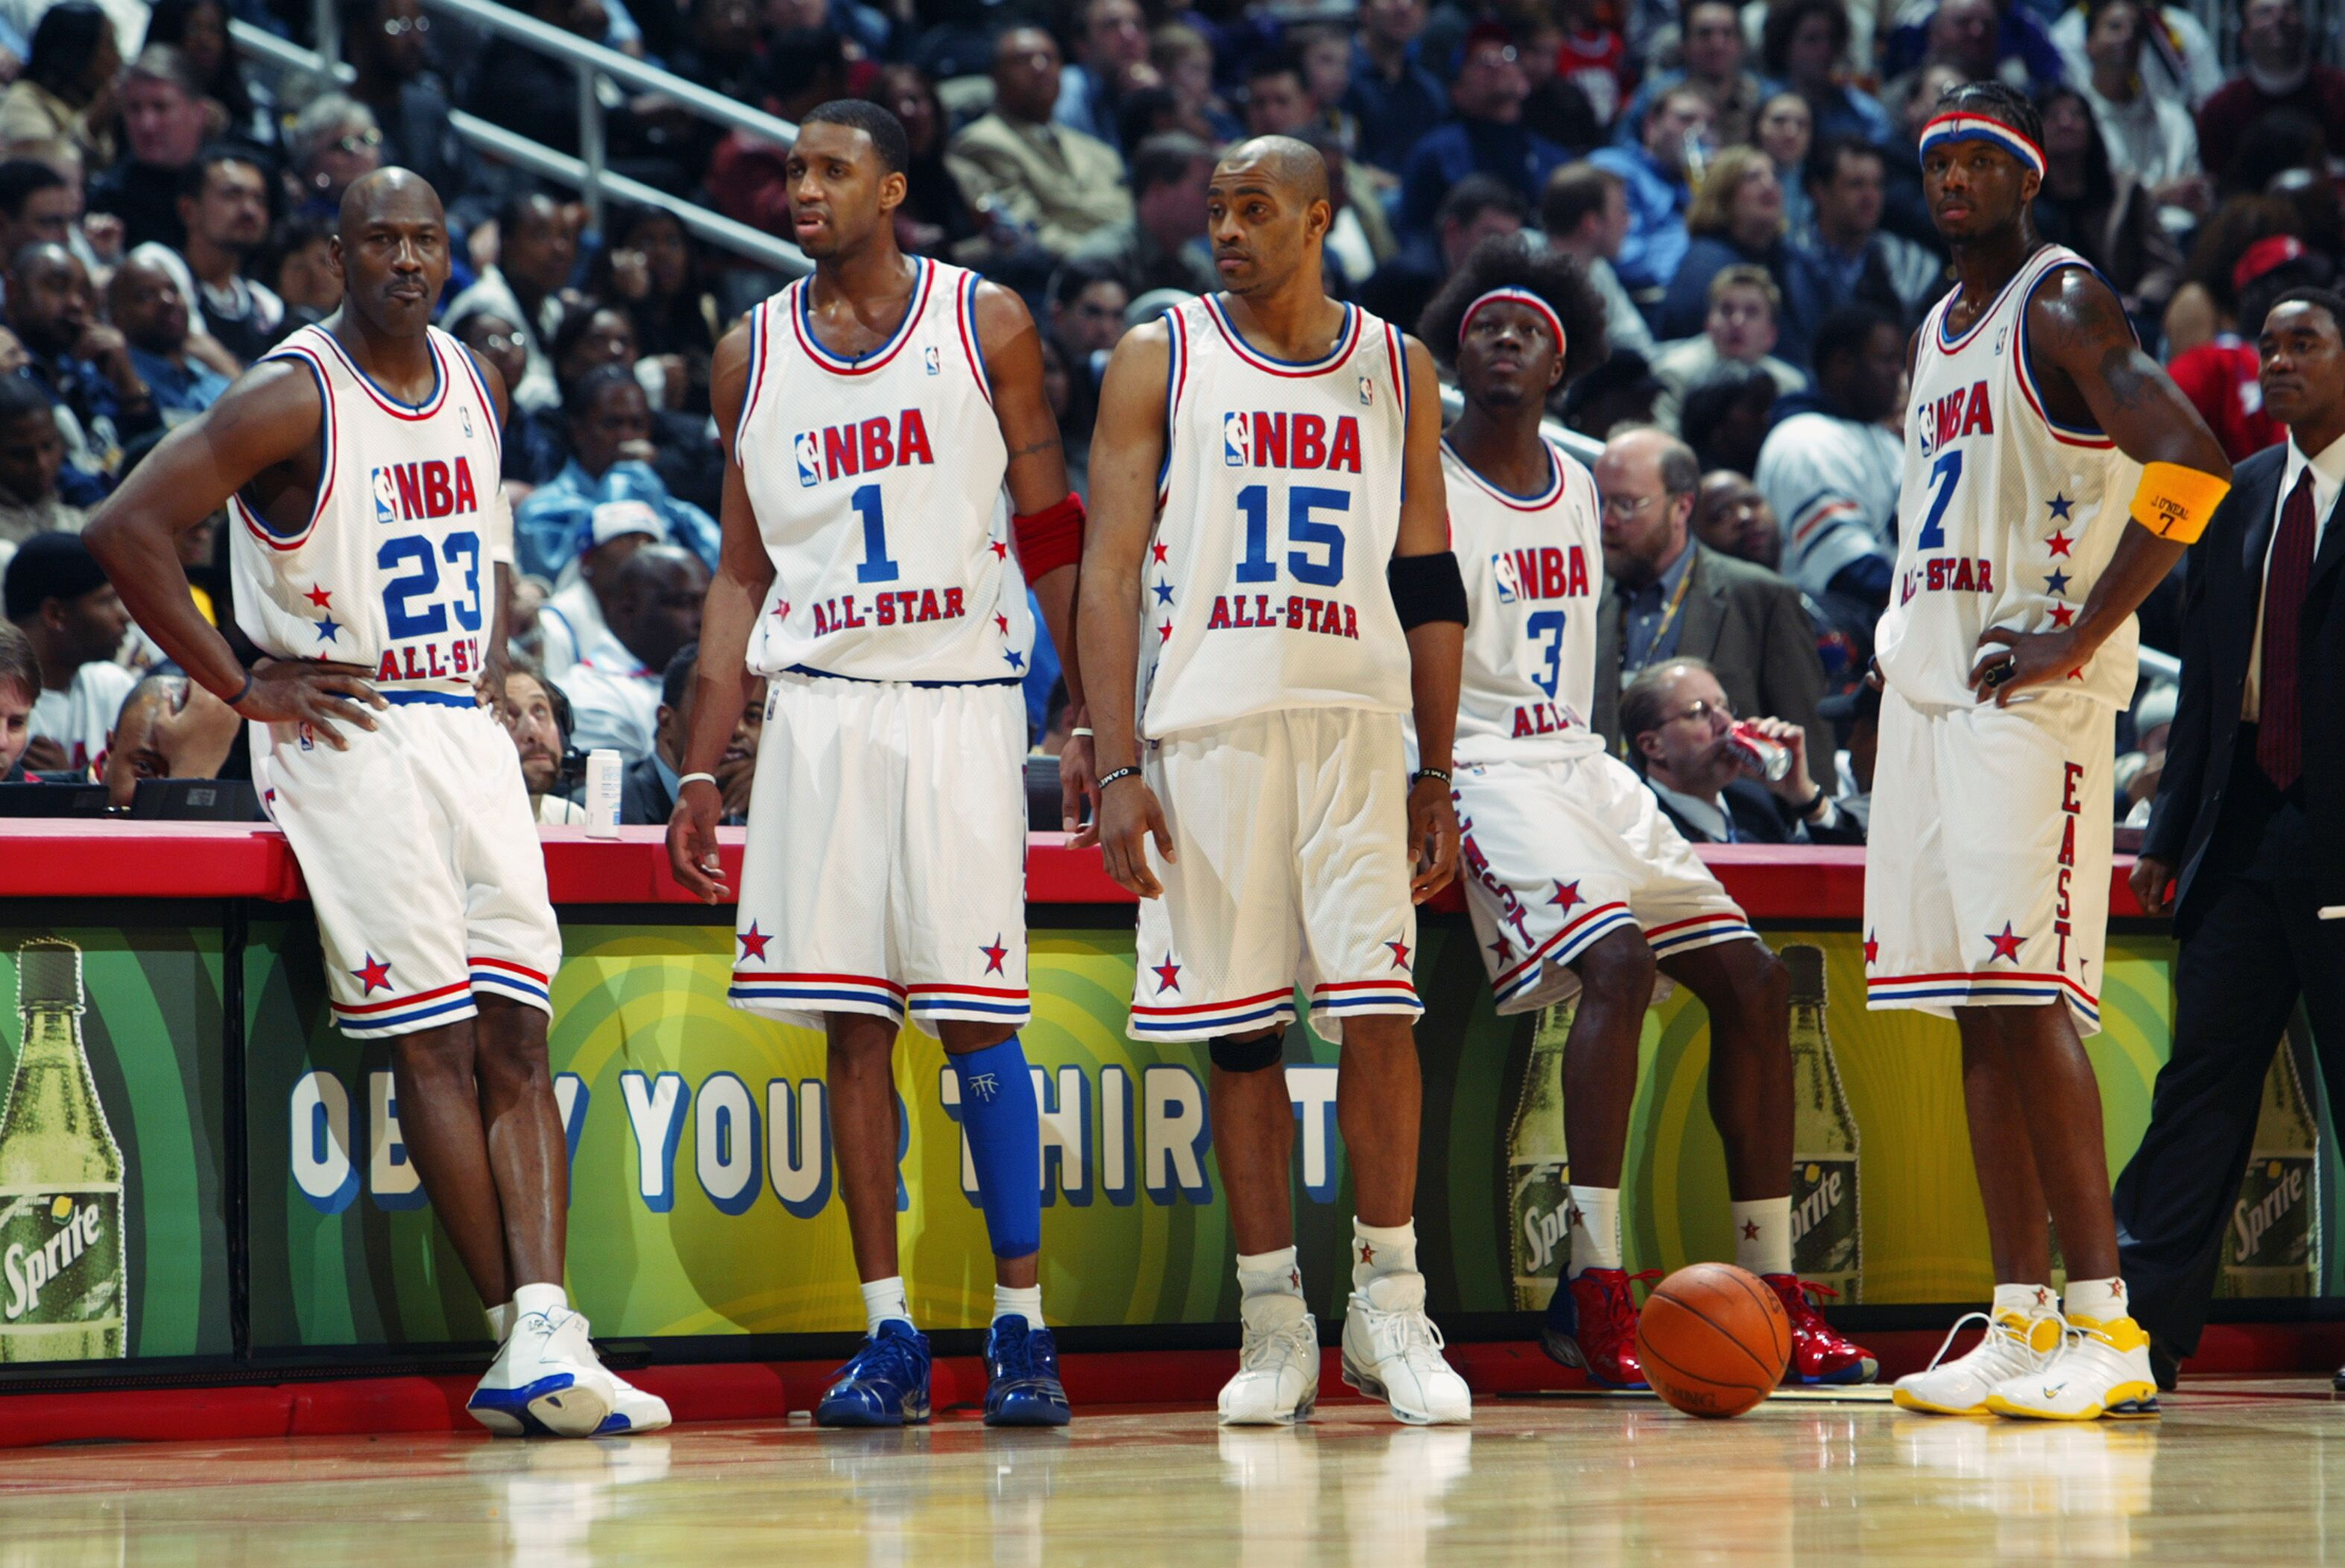 Over and Back: Many times an NBA All-Star, but overlooked today